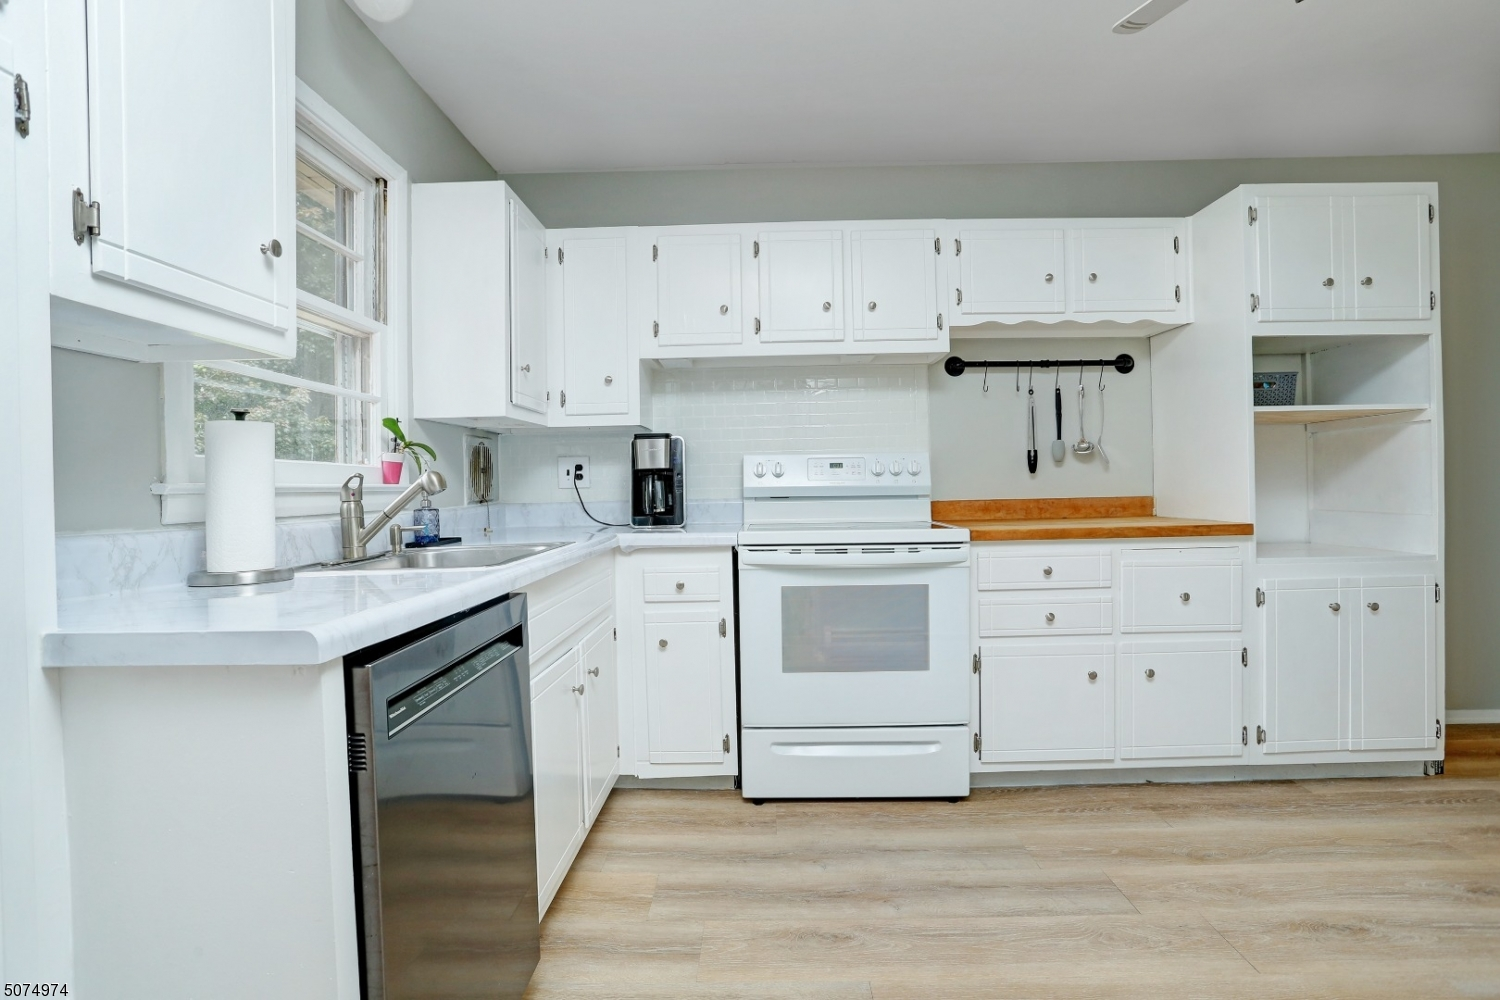 New wood-like laminated floors are just one of the new amenities this kitchen has to offer.  Electric range/oven, Kitchen Aid Dishwasher, GE fridge/freezer, tile-like backsplash and laminate counter tops with stainless steal sink complete this kitchen!